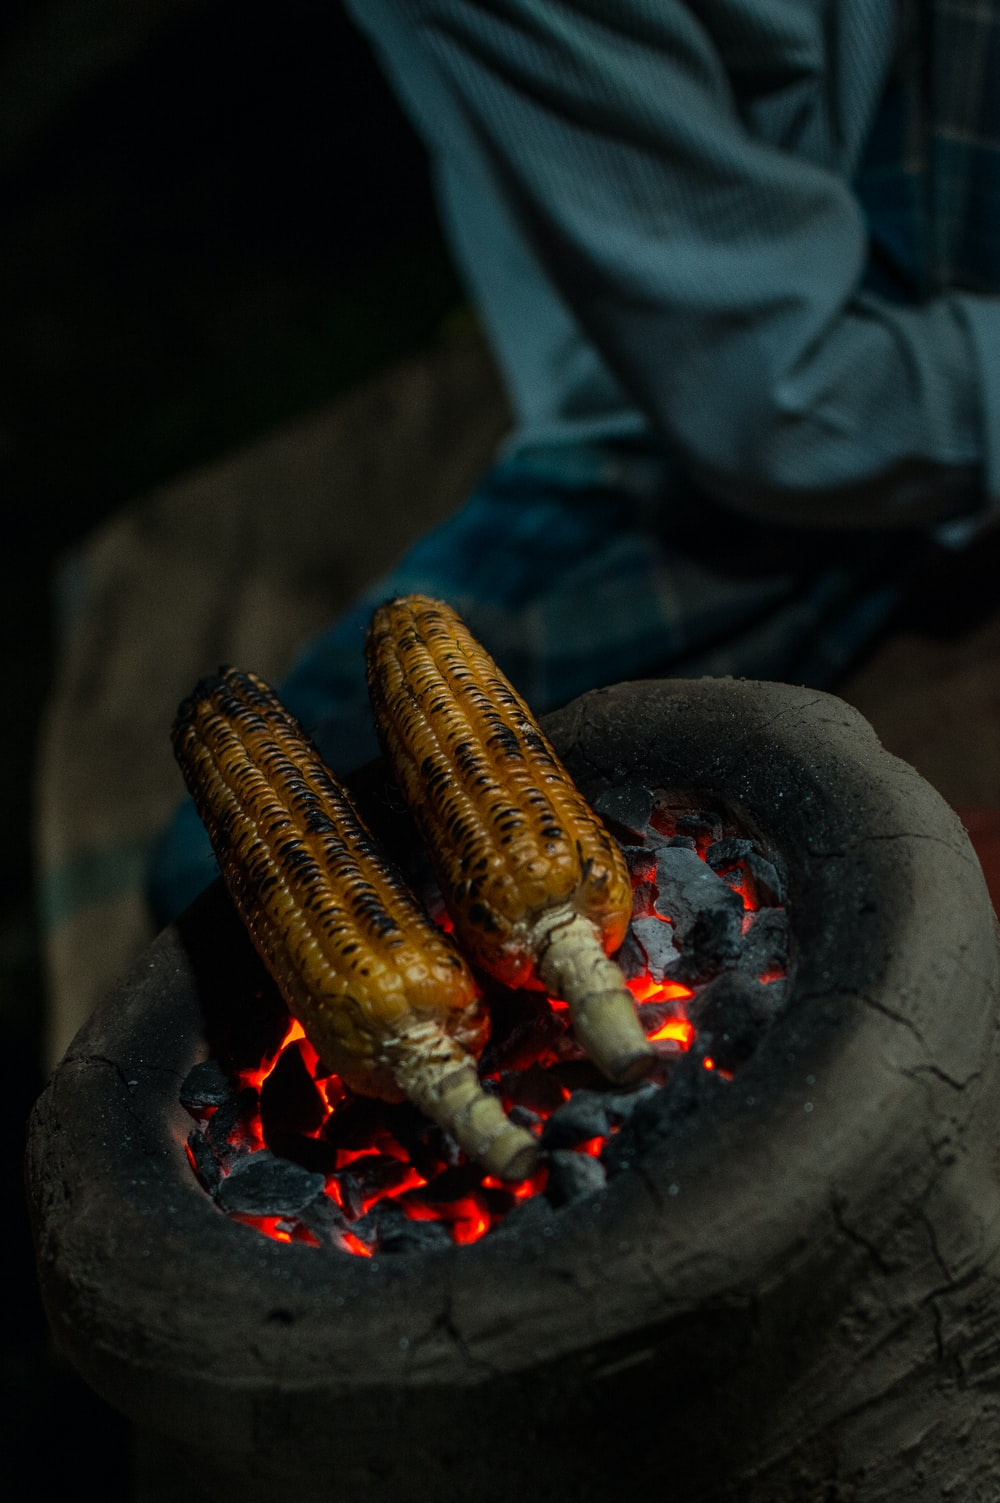 Indian Street Food Pictures Download Free Images On Unsplash